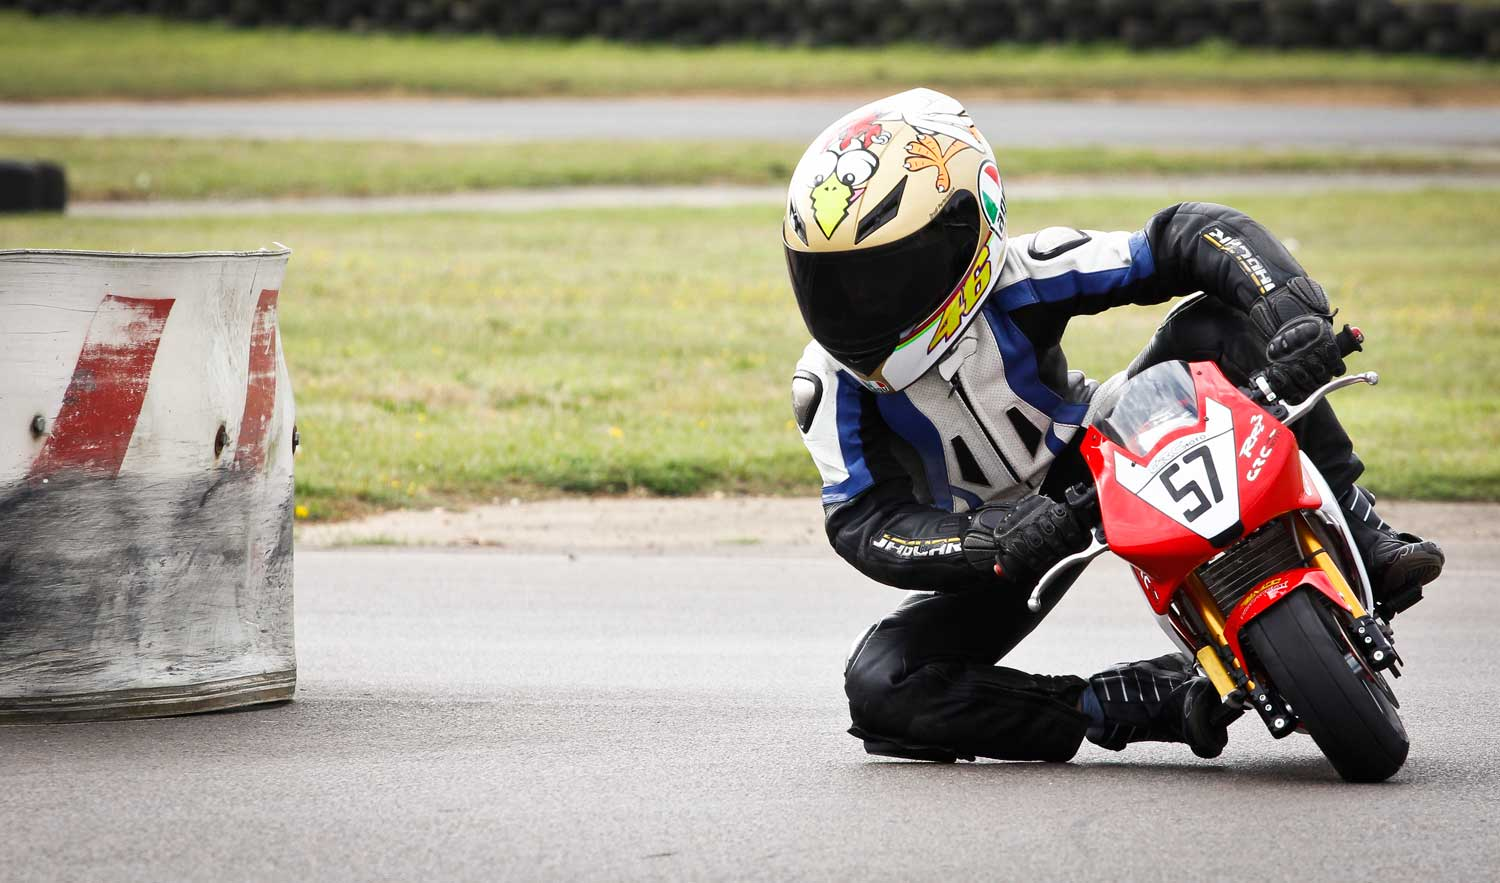 Junior racer Josh Hiatt on his first session with a new machine